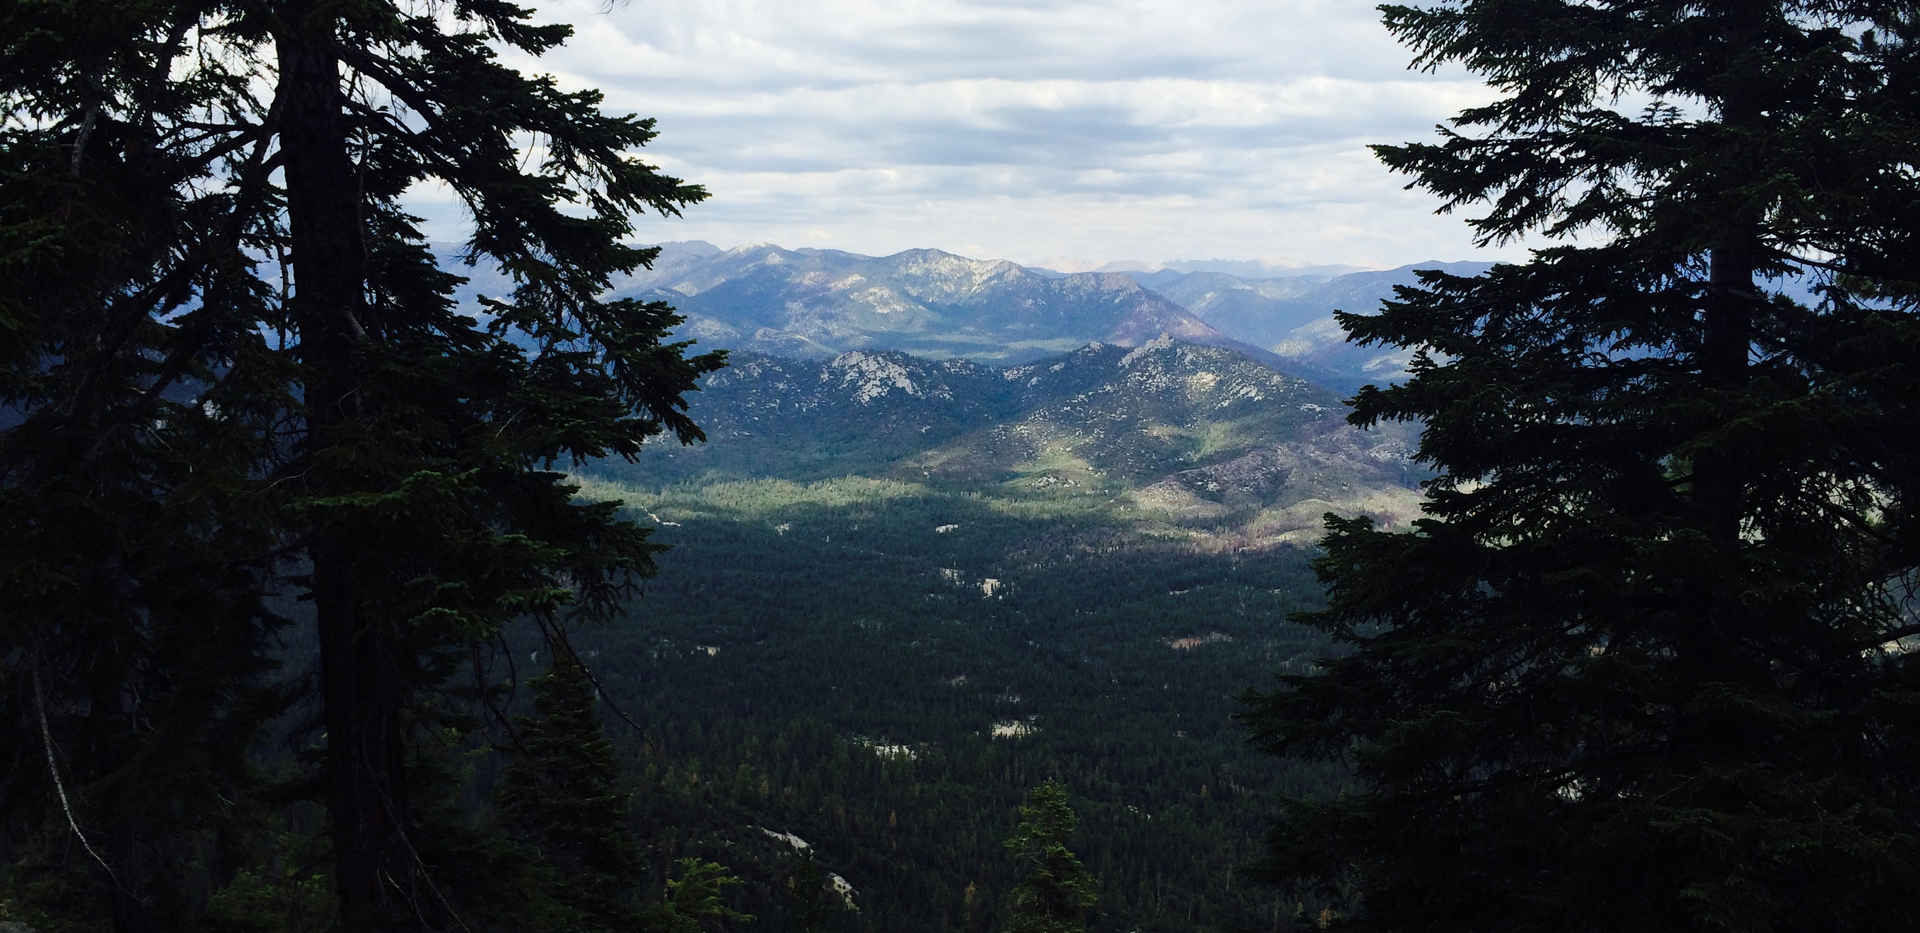 View from the Needles Lookout Trail